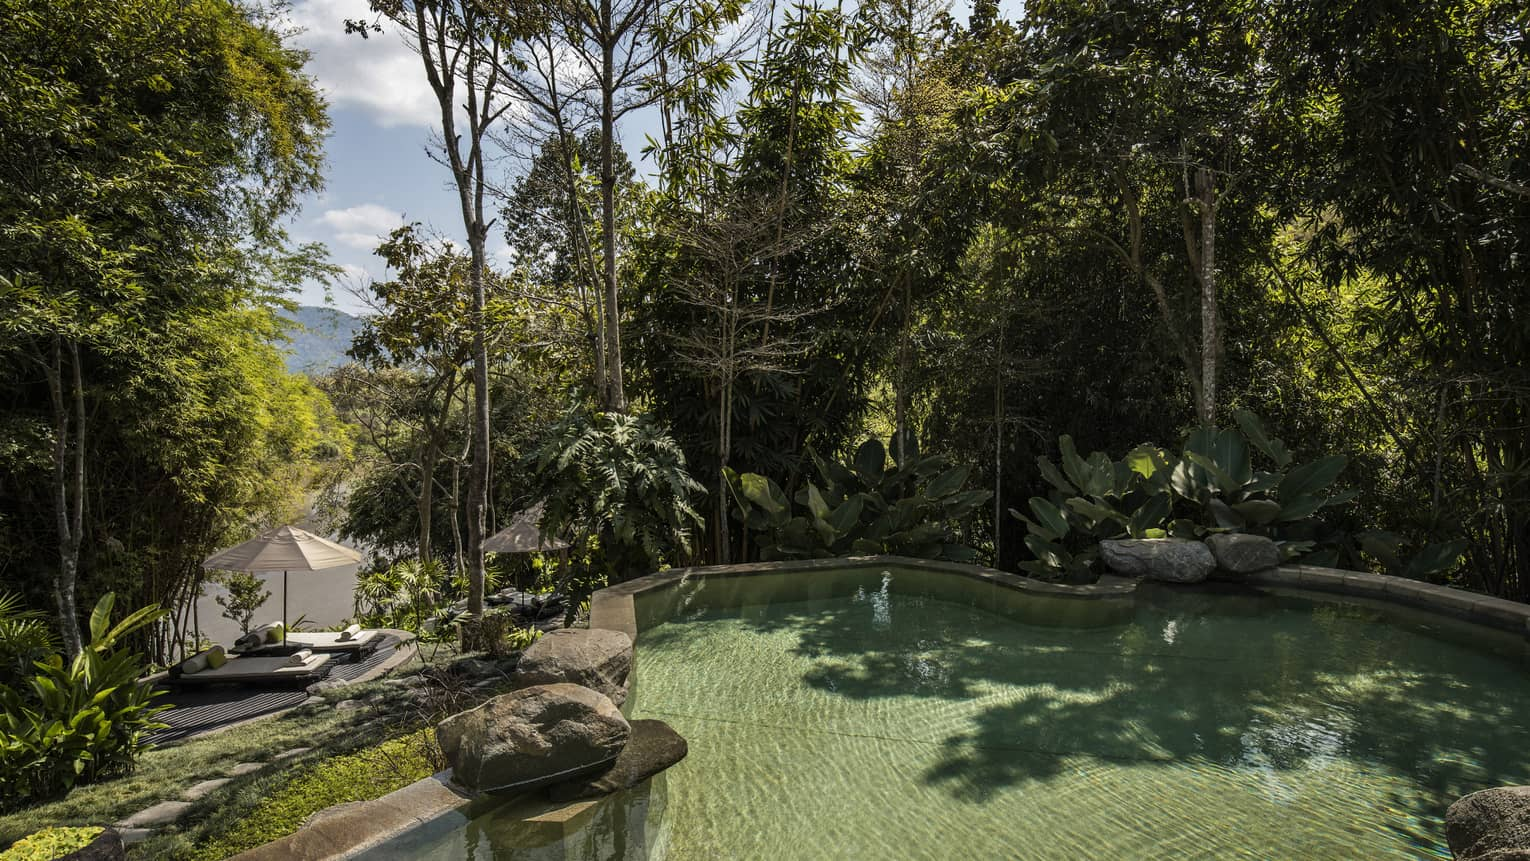 Large Riverside Pool outdoor by towering trees, large boulders